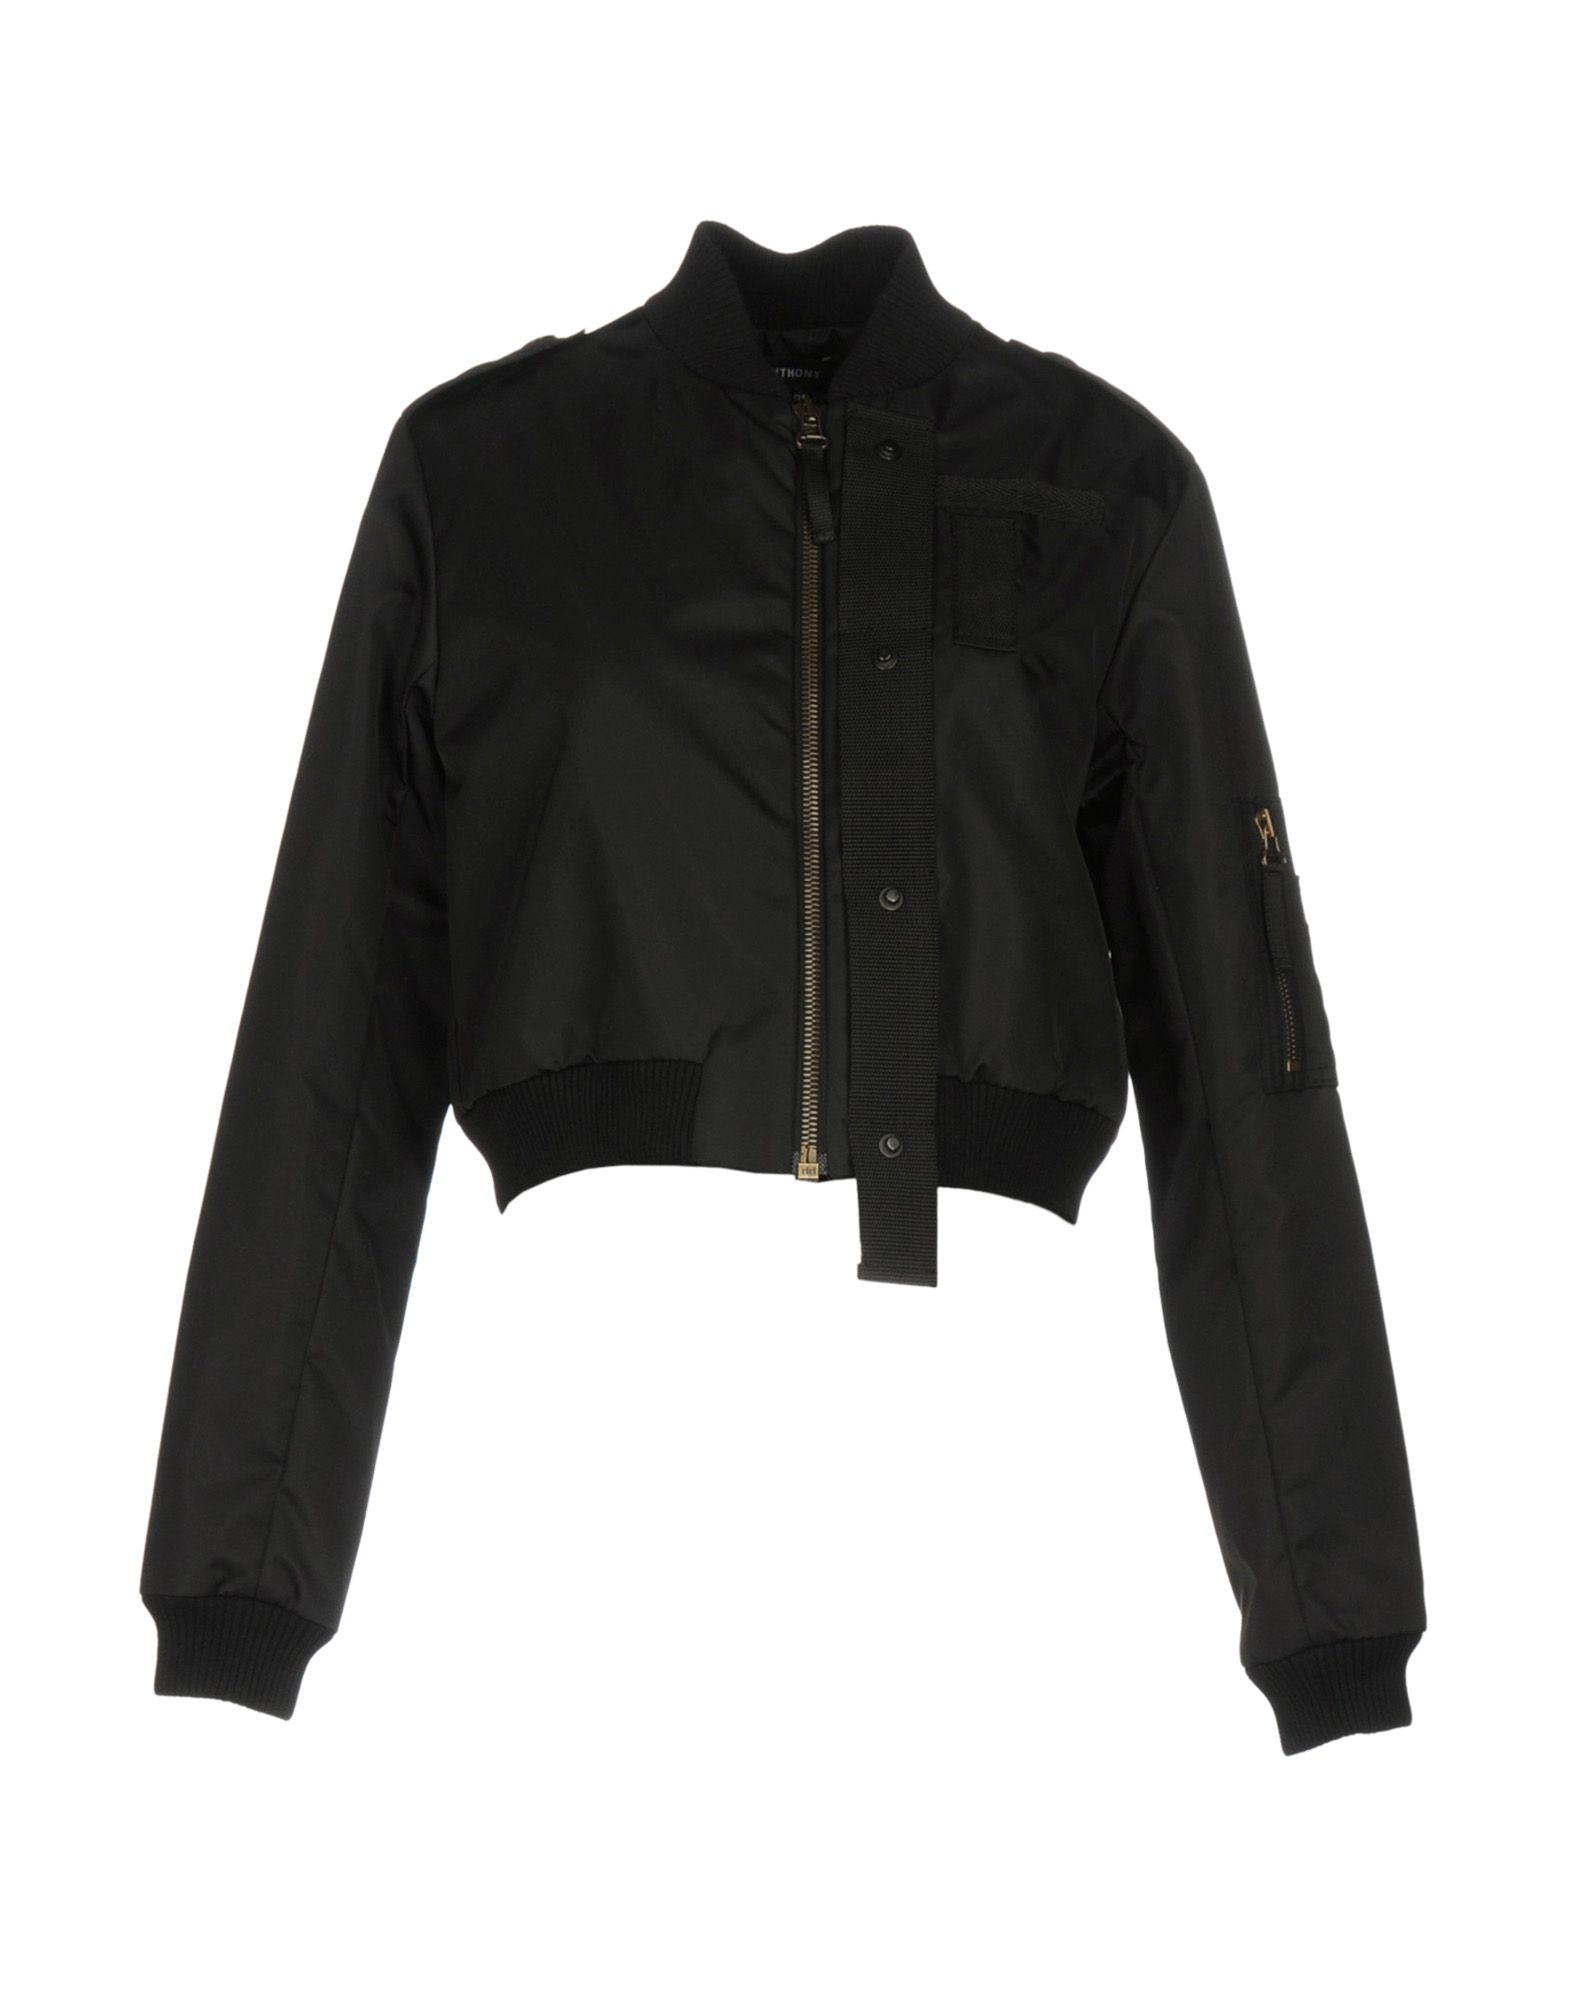 ANTHONY VACCARELLO Bomber in Black